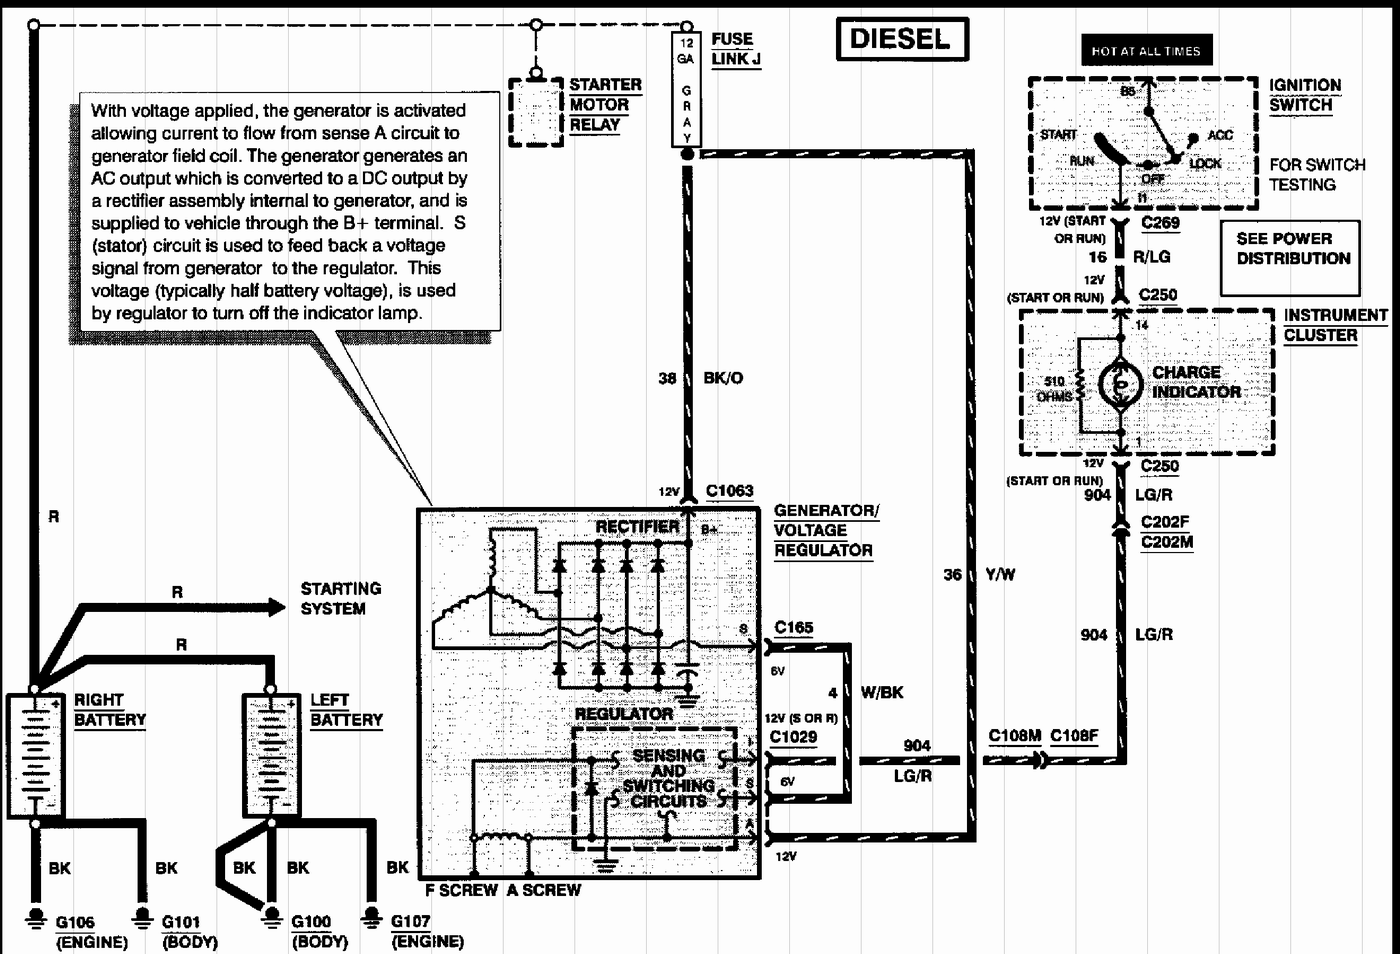 I Need A Wiring Diagram For A 97 F350 7 3 Powerstroke With Powerstroke Ford F250 Diesel F350